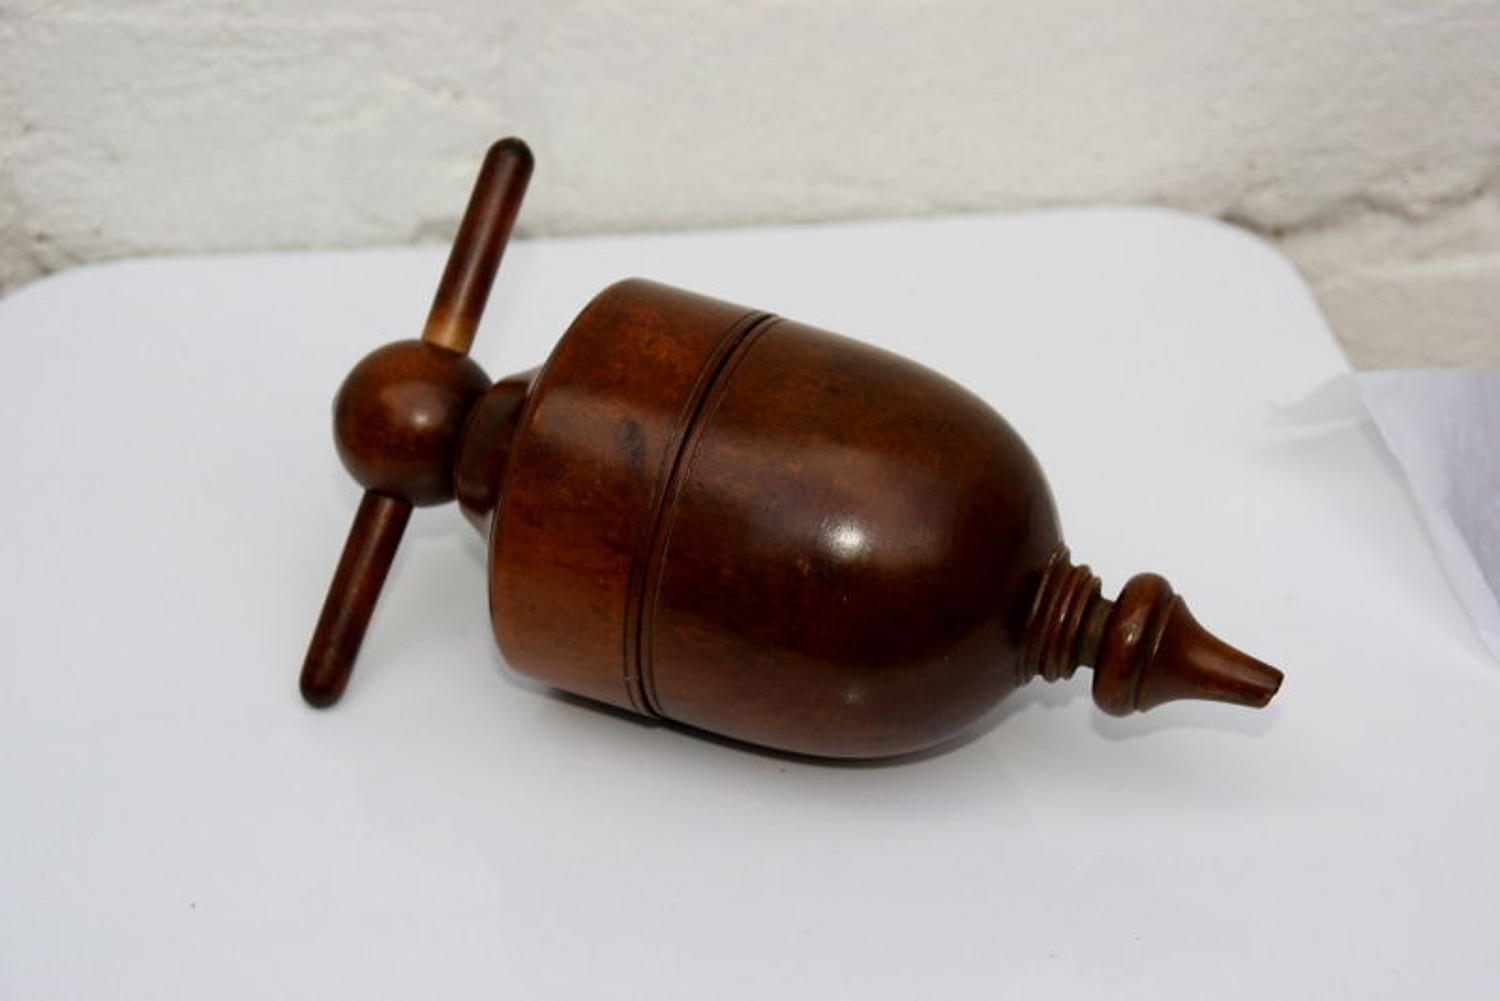 Treen Lemon squeezer 19th century